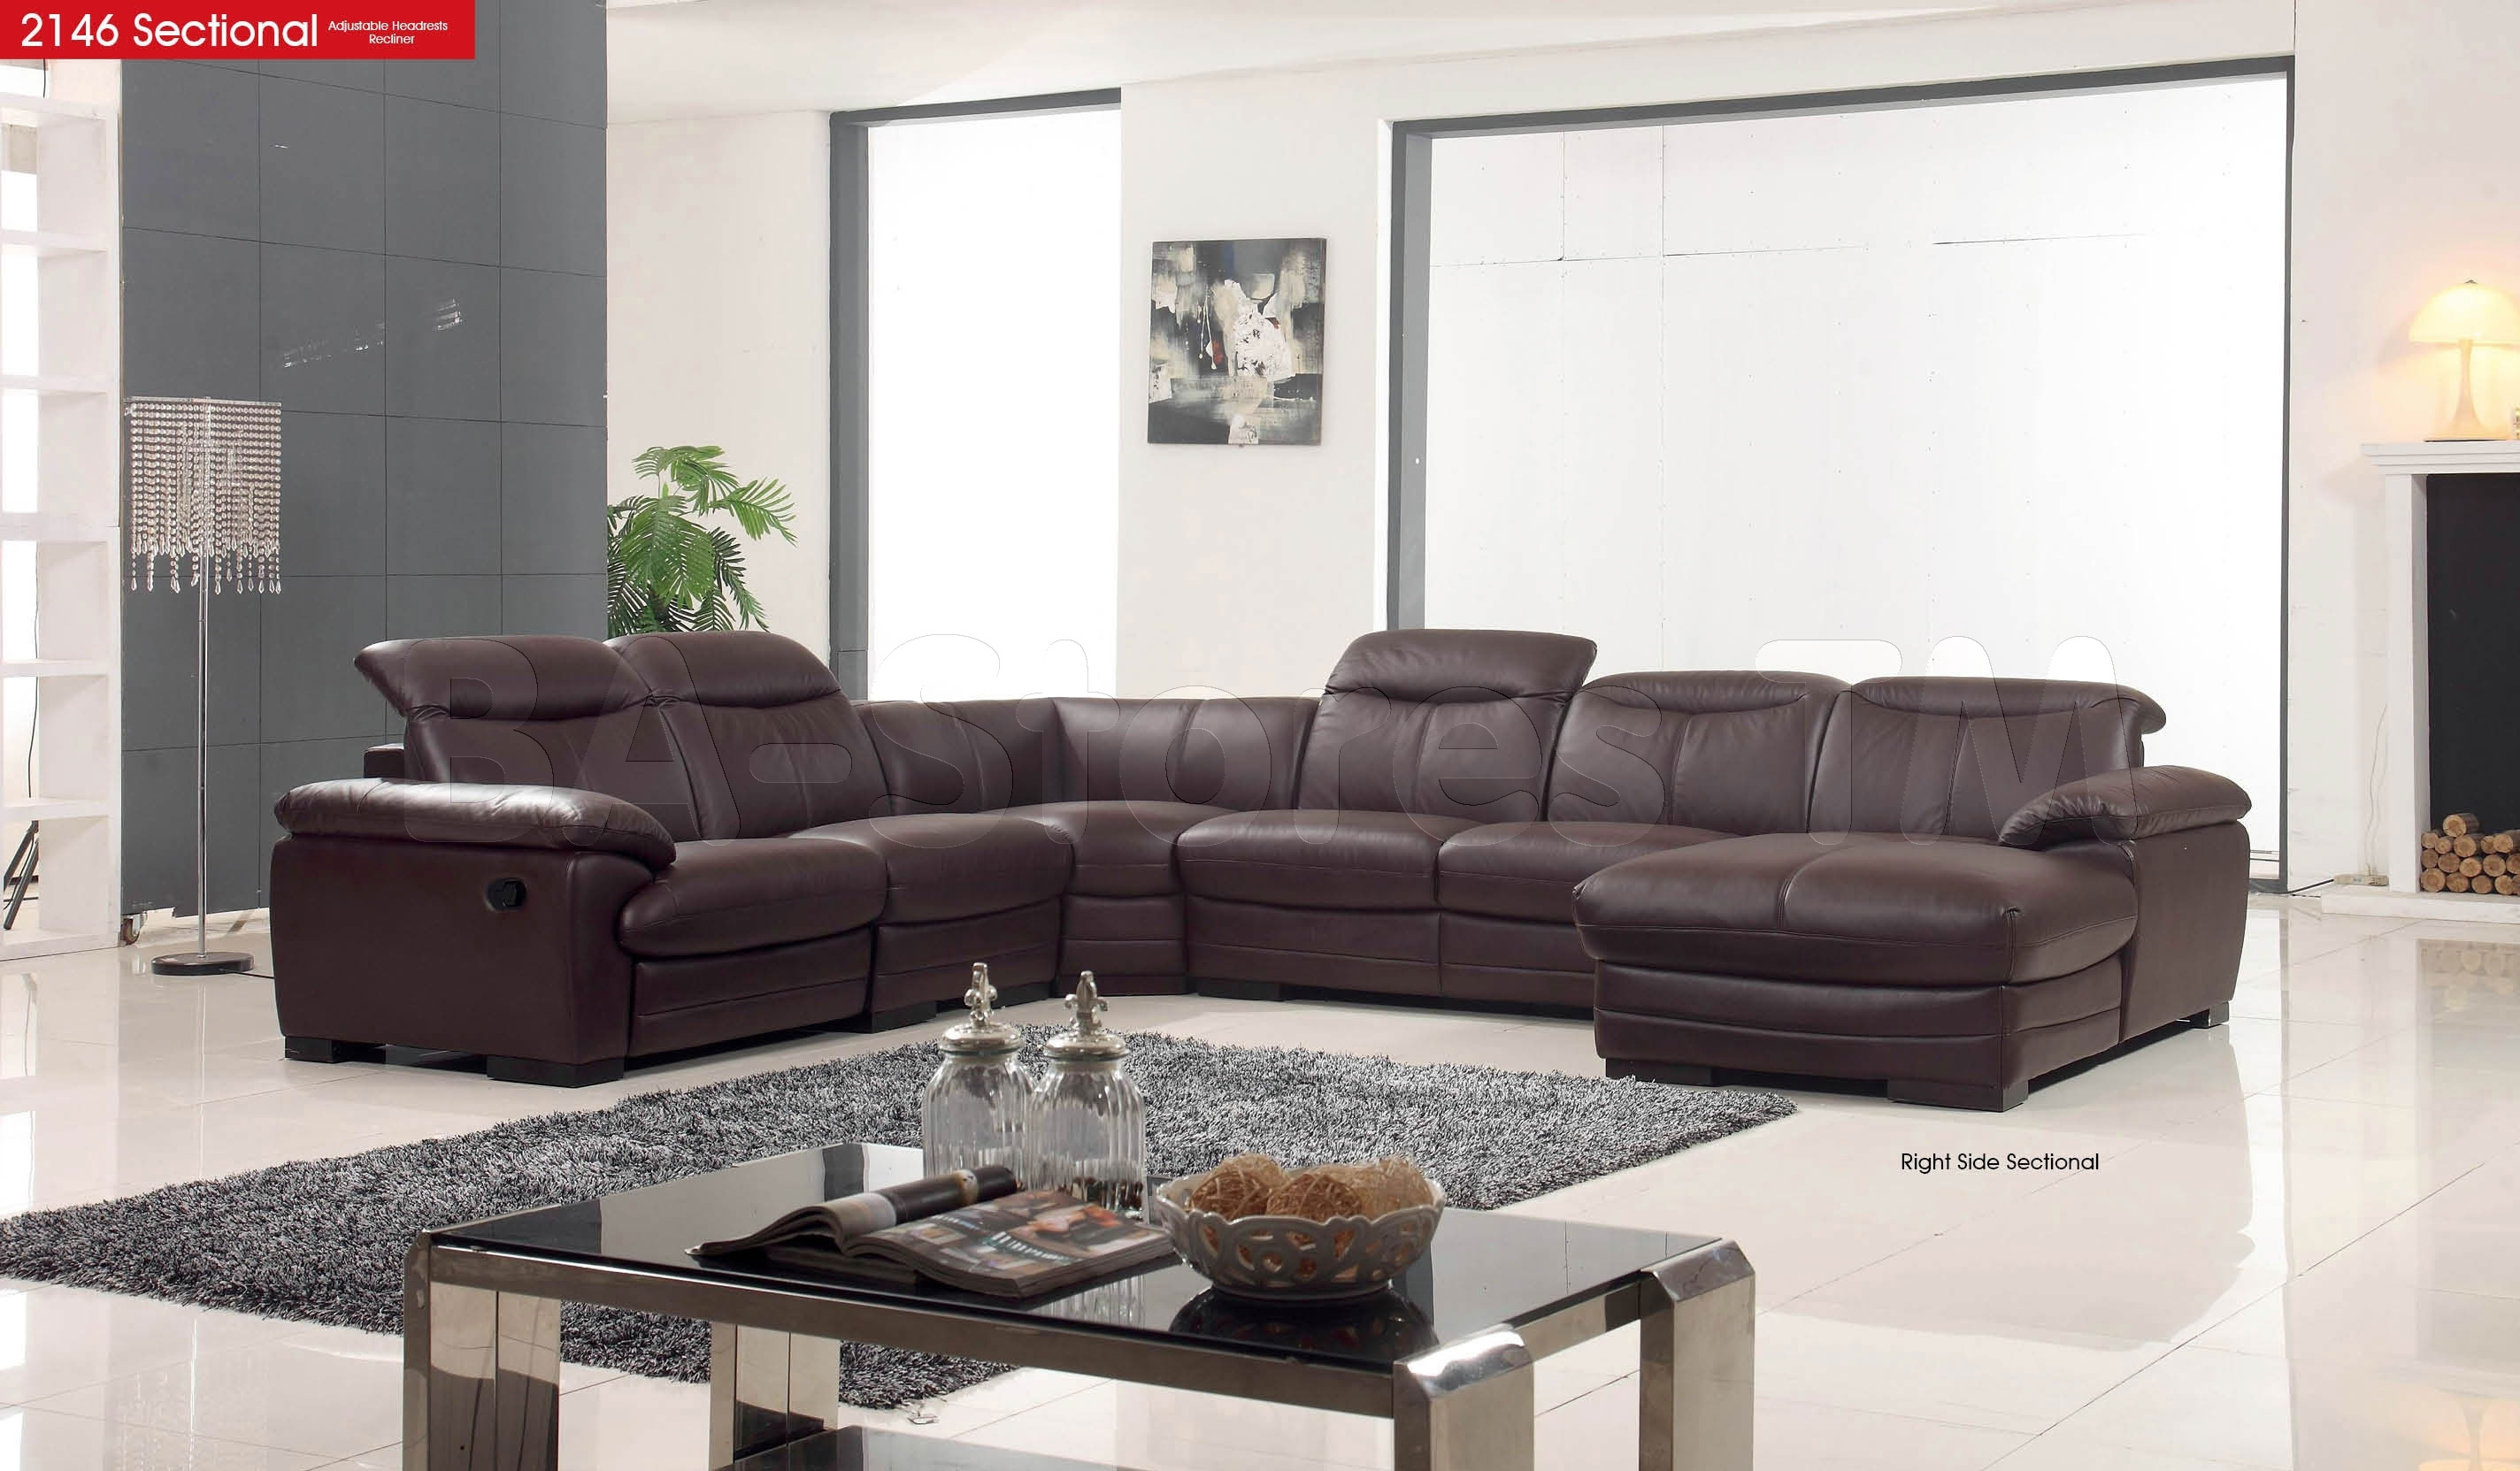 2146 Sectional Sofa - $4,100.00 : Furniture Store Shipped Free In pertaining to Nj Sectional Sofas (Image 1 of 10)